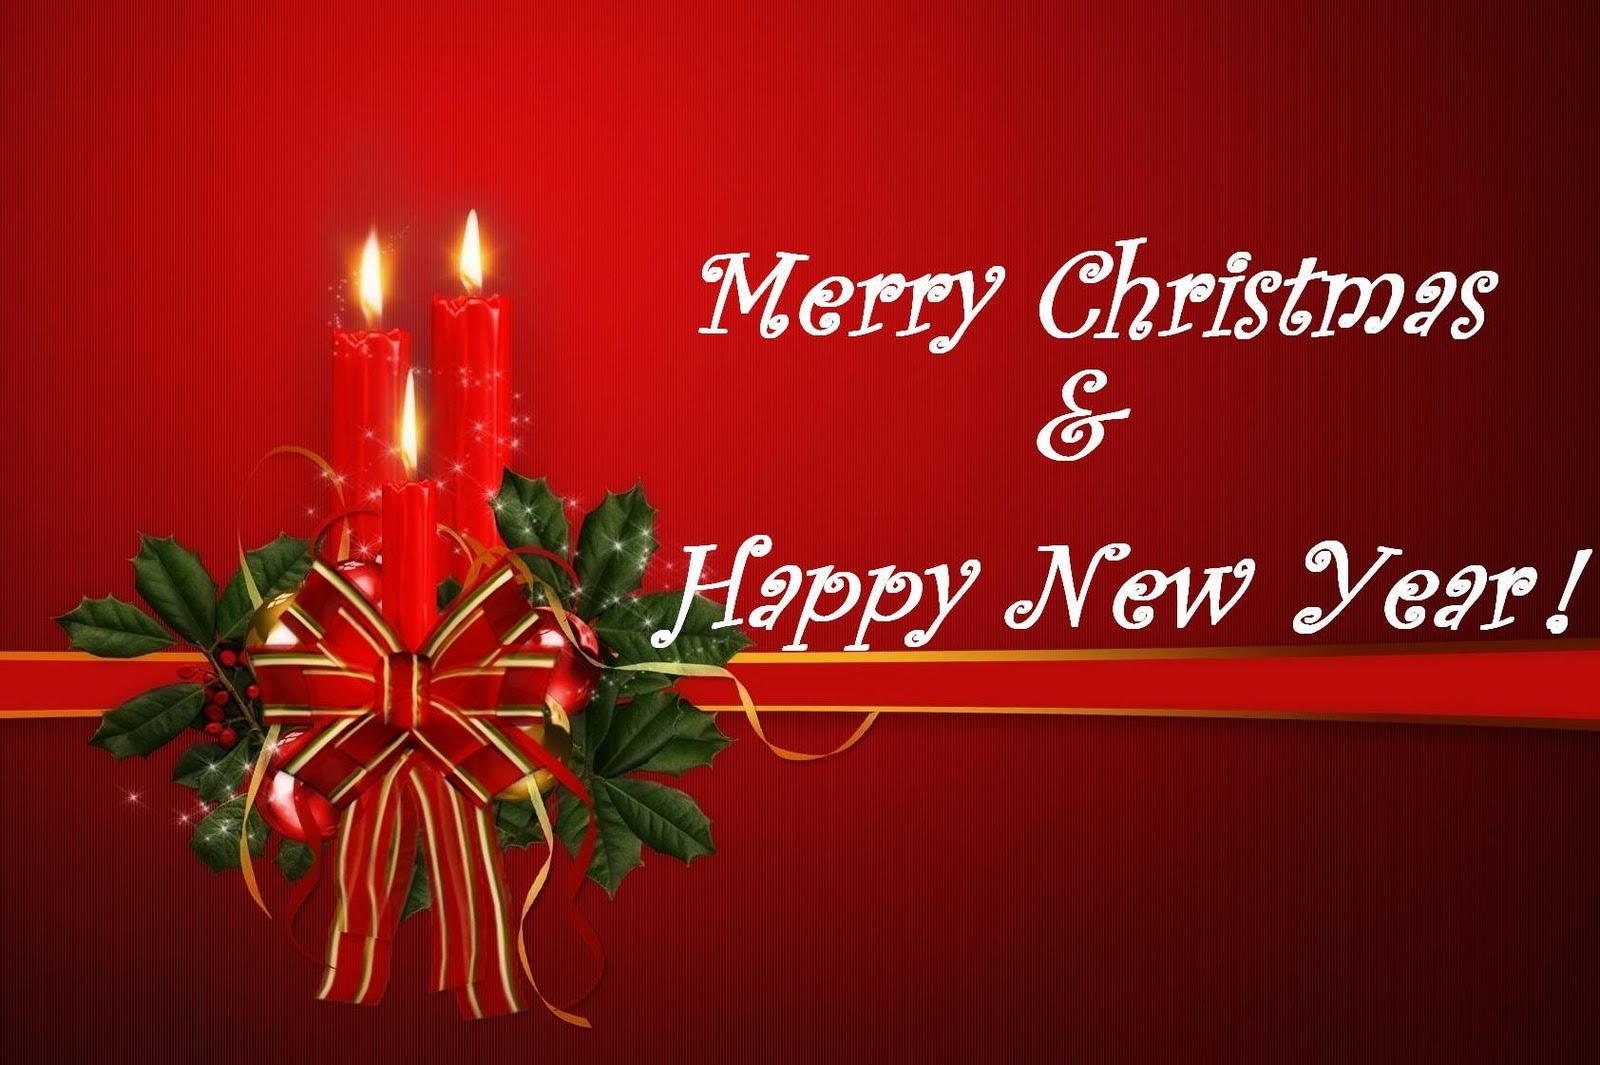 Merry Christmas and a Happy New Year - Megri News, Analysis And Blog